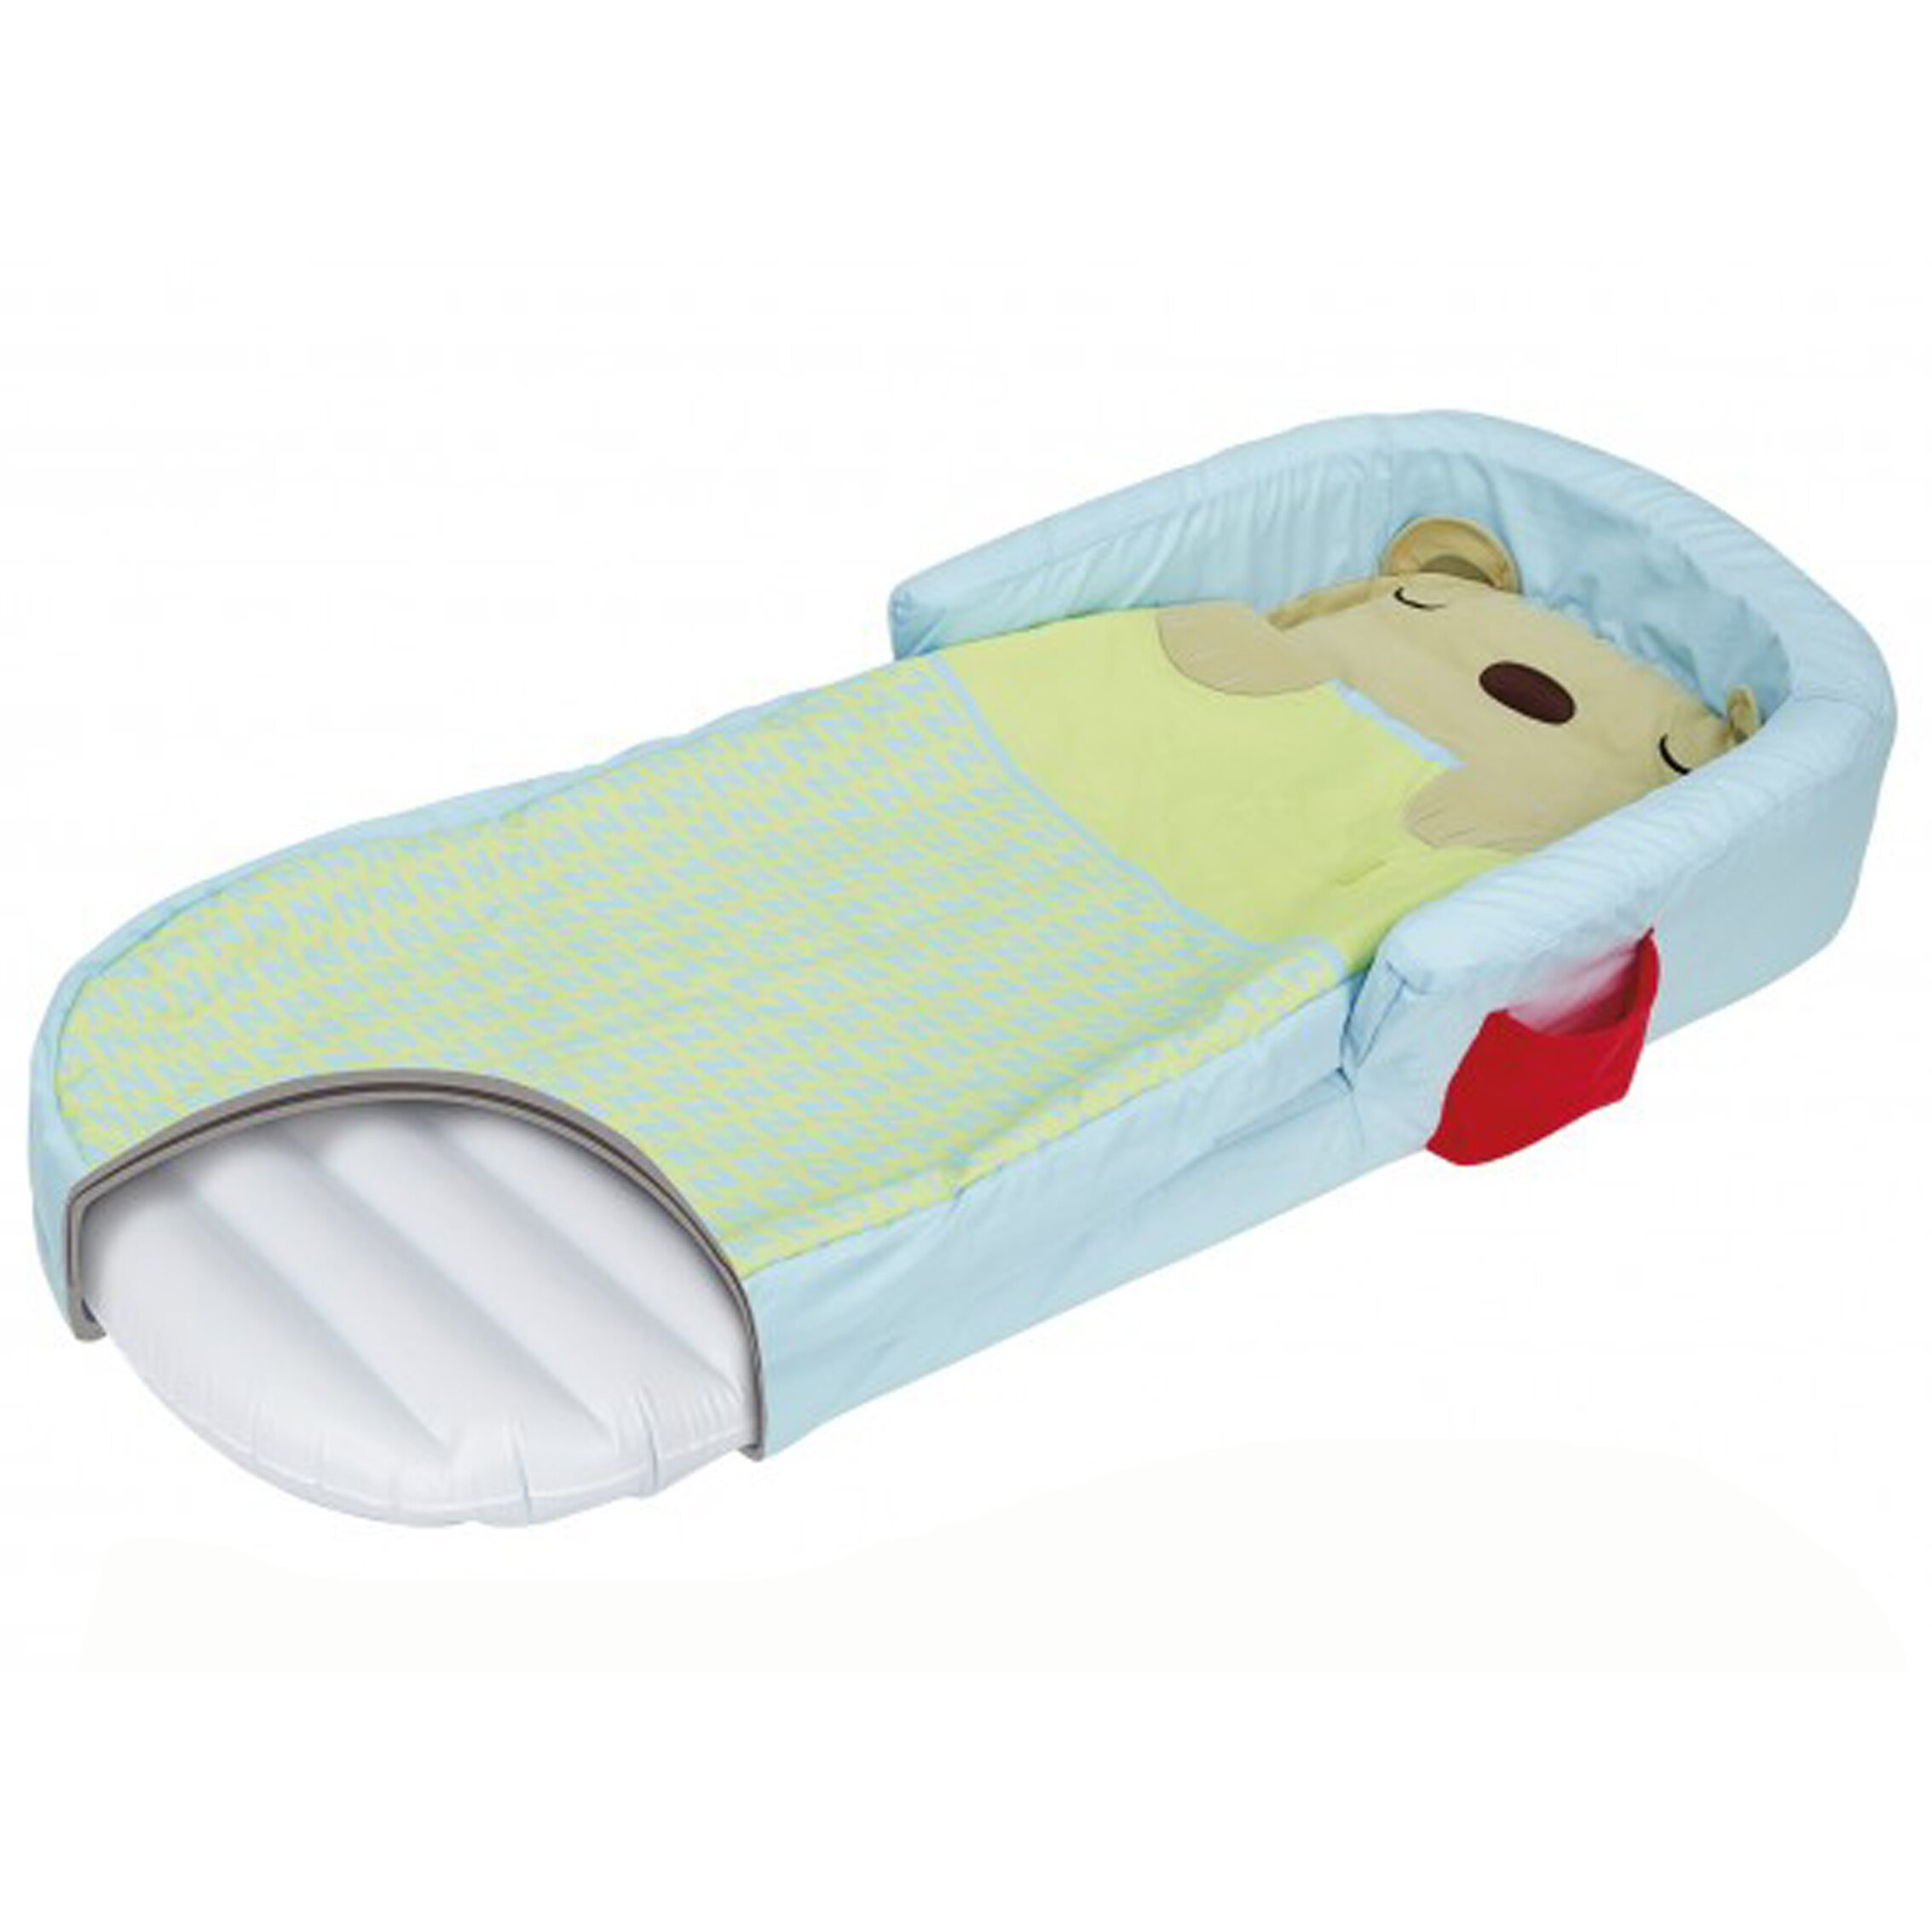 Bear Beds Air Mattress